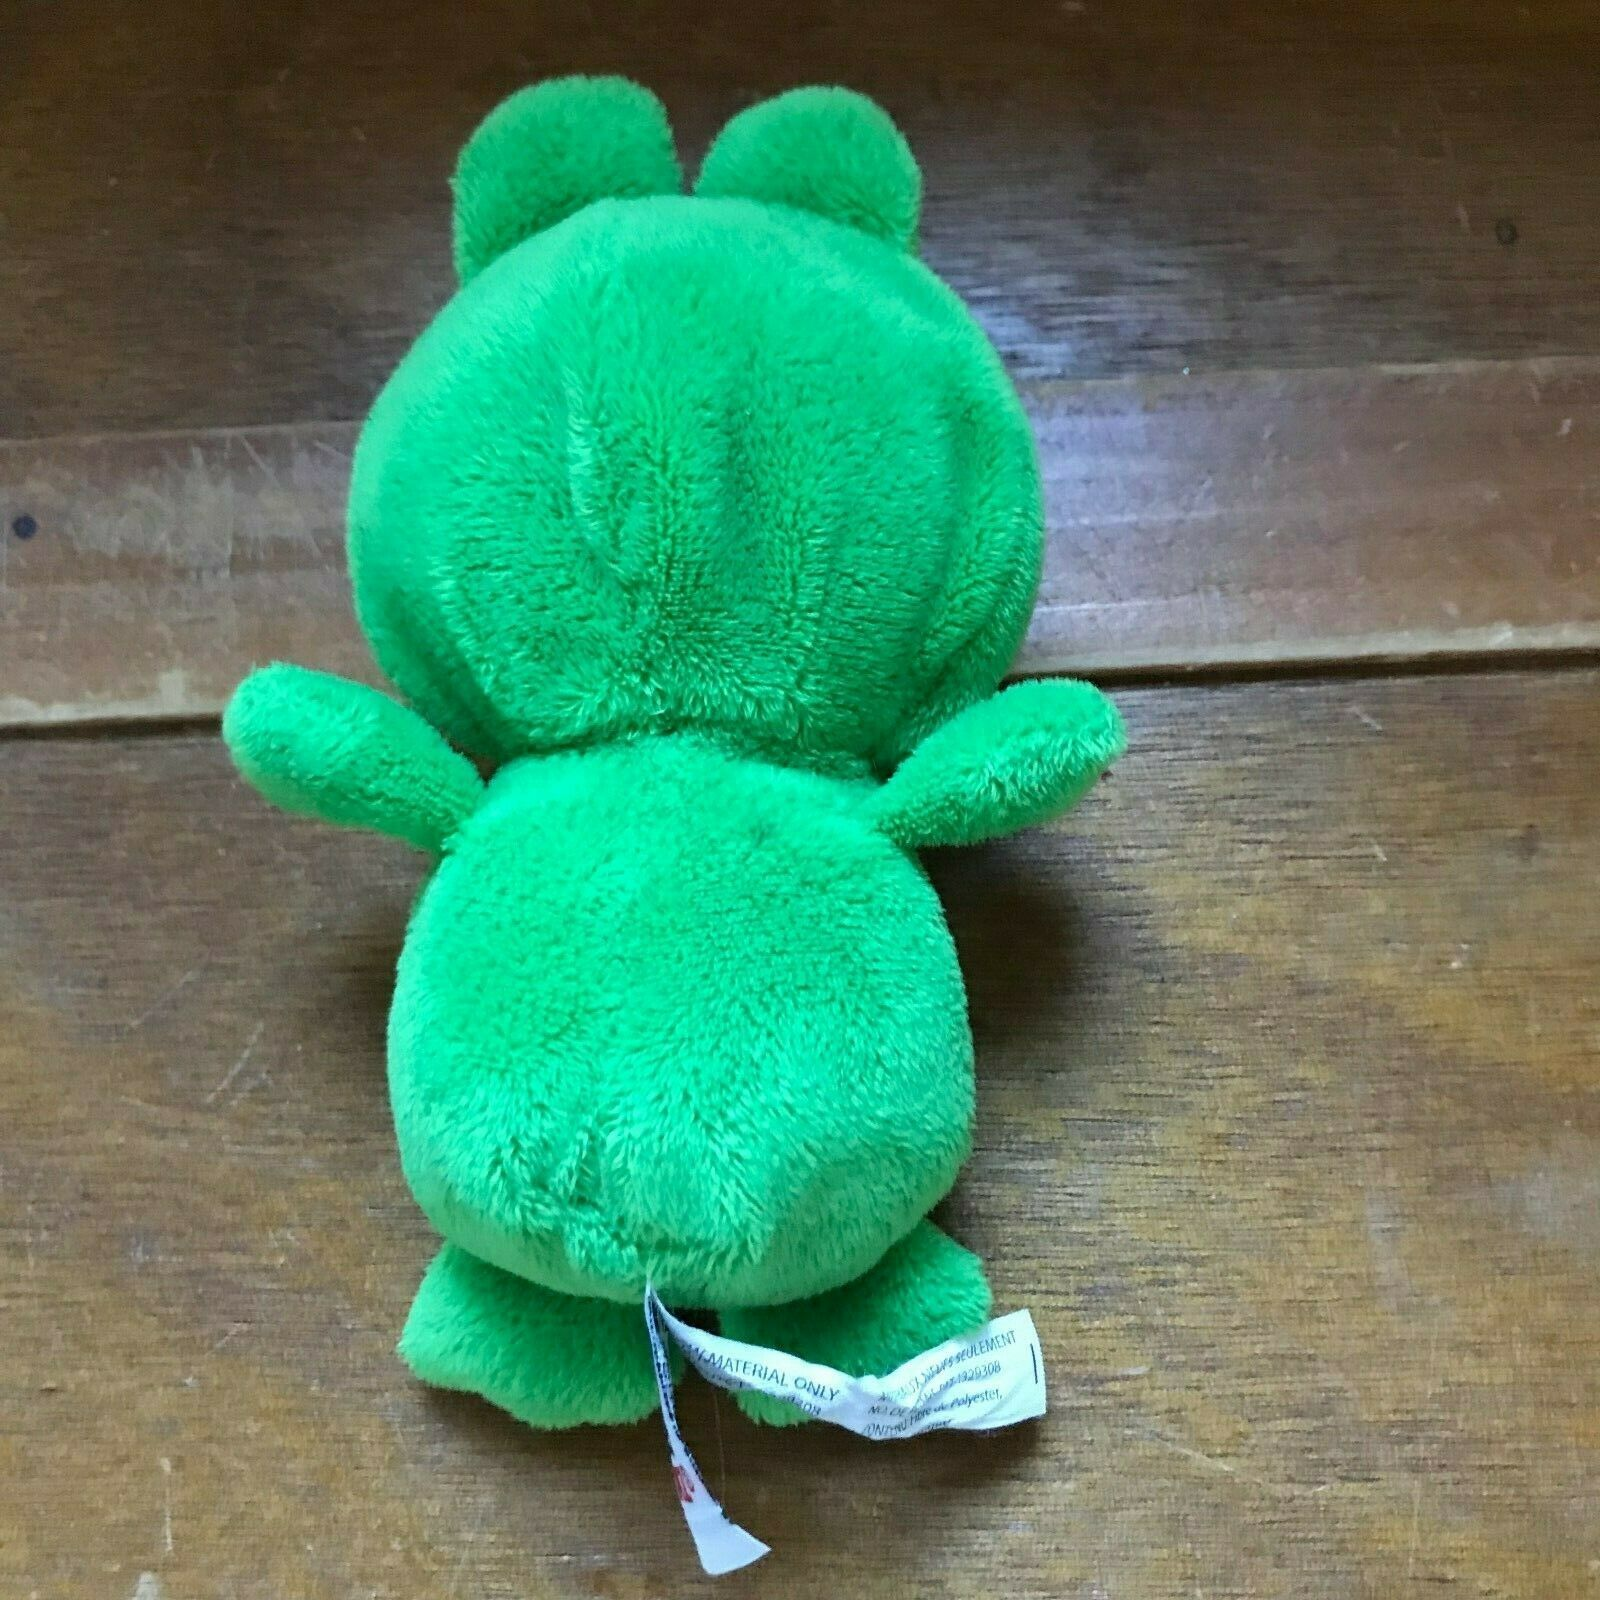 Ganz Small Caillou Friend Leo in Green Frog Costume Plush Stuffed Animal Doll –  image 7